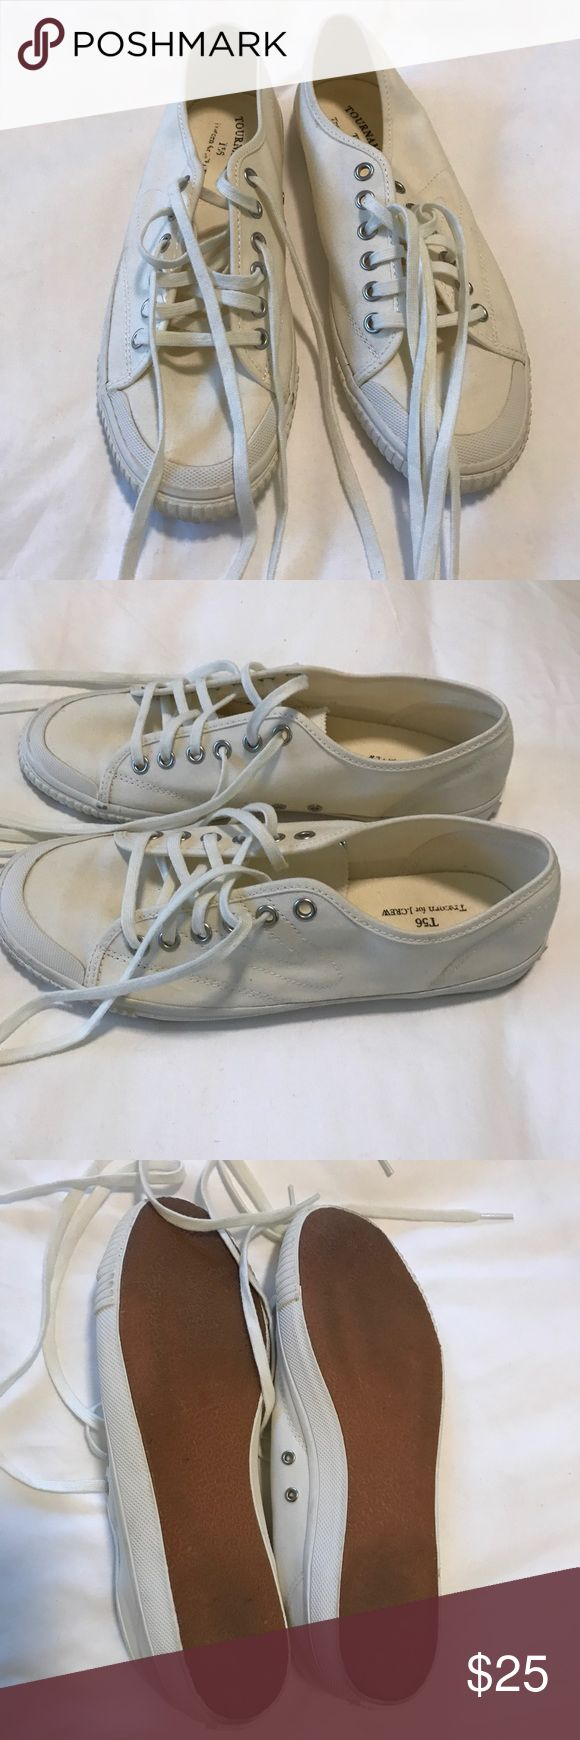 J.Crew Tretorn Canvas Sneakers Classic lace up sneakers by J.Crew & Tretorn. An iconic Swedish brand with the first luxury sport shoe worn on (and off) tennis courts around the world.   in Ivory Lightweight canvas shoe, inspired by a vintage sneaker from the 1950s. Cotton Canvas Upper. Two sets of laces.  Style #471844 10 US Women's size 9.5 - true to size.  Worn once, in perfect condition. J. Crew Shoes Sneakers